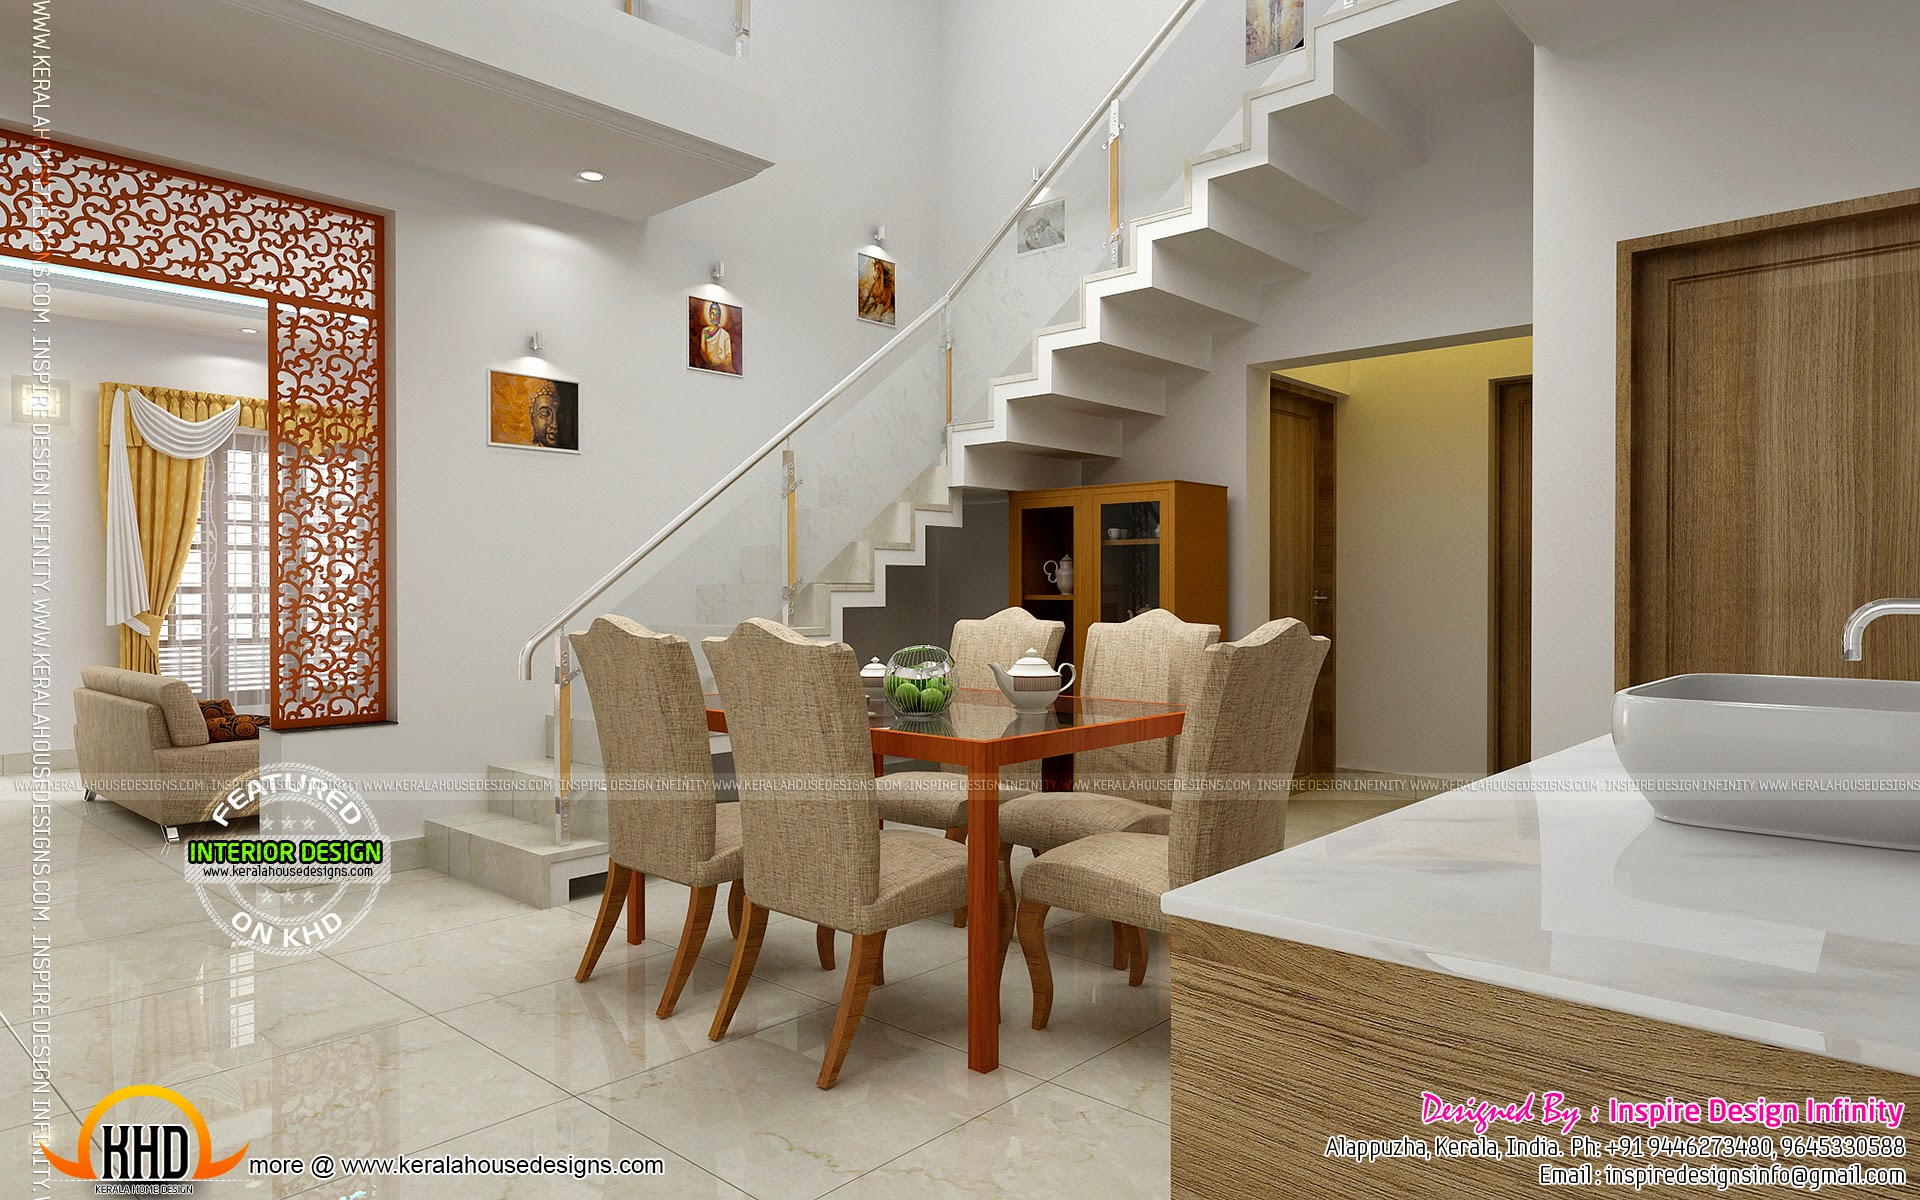 Dining room designs kerala home design and floor plans for Dining hall design ideas